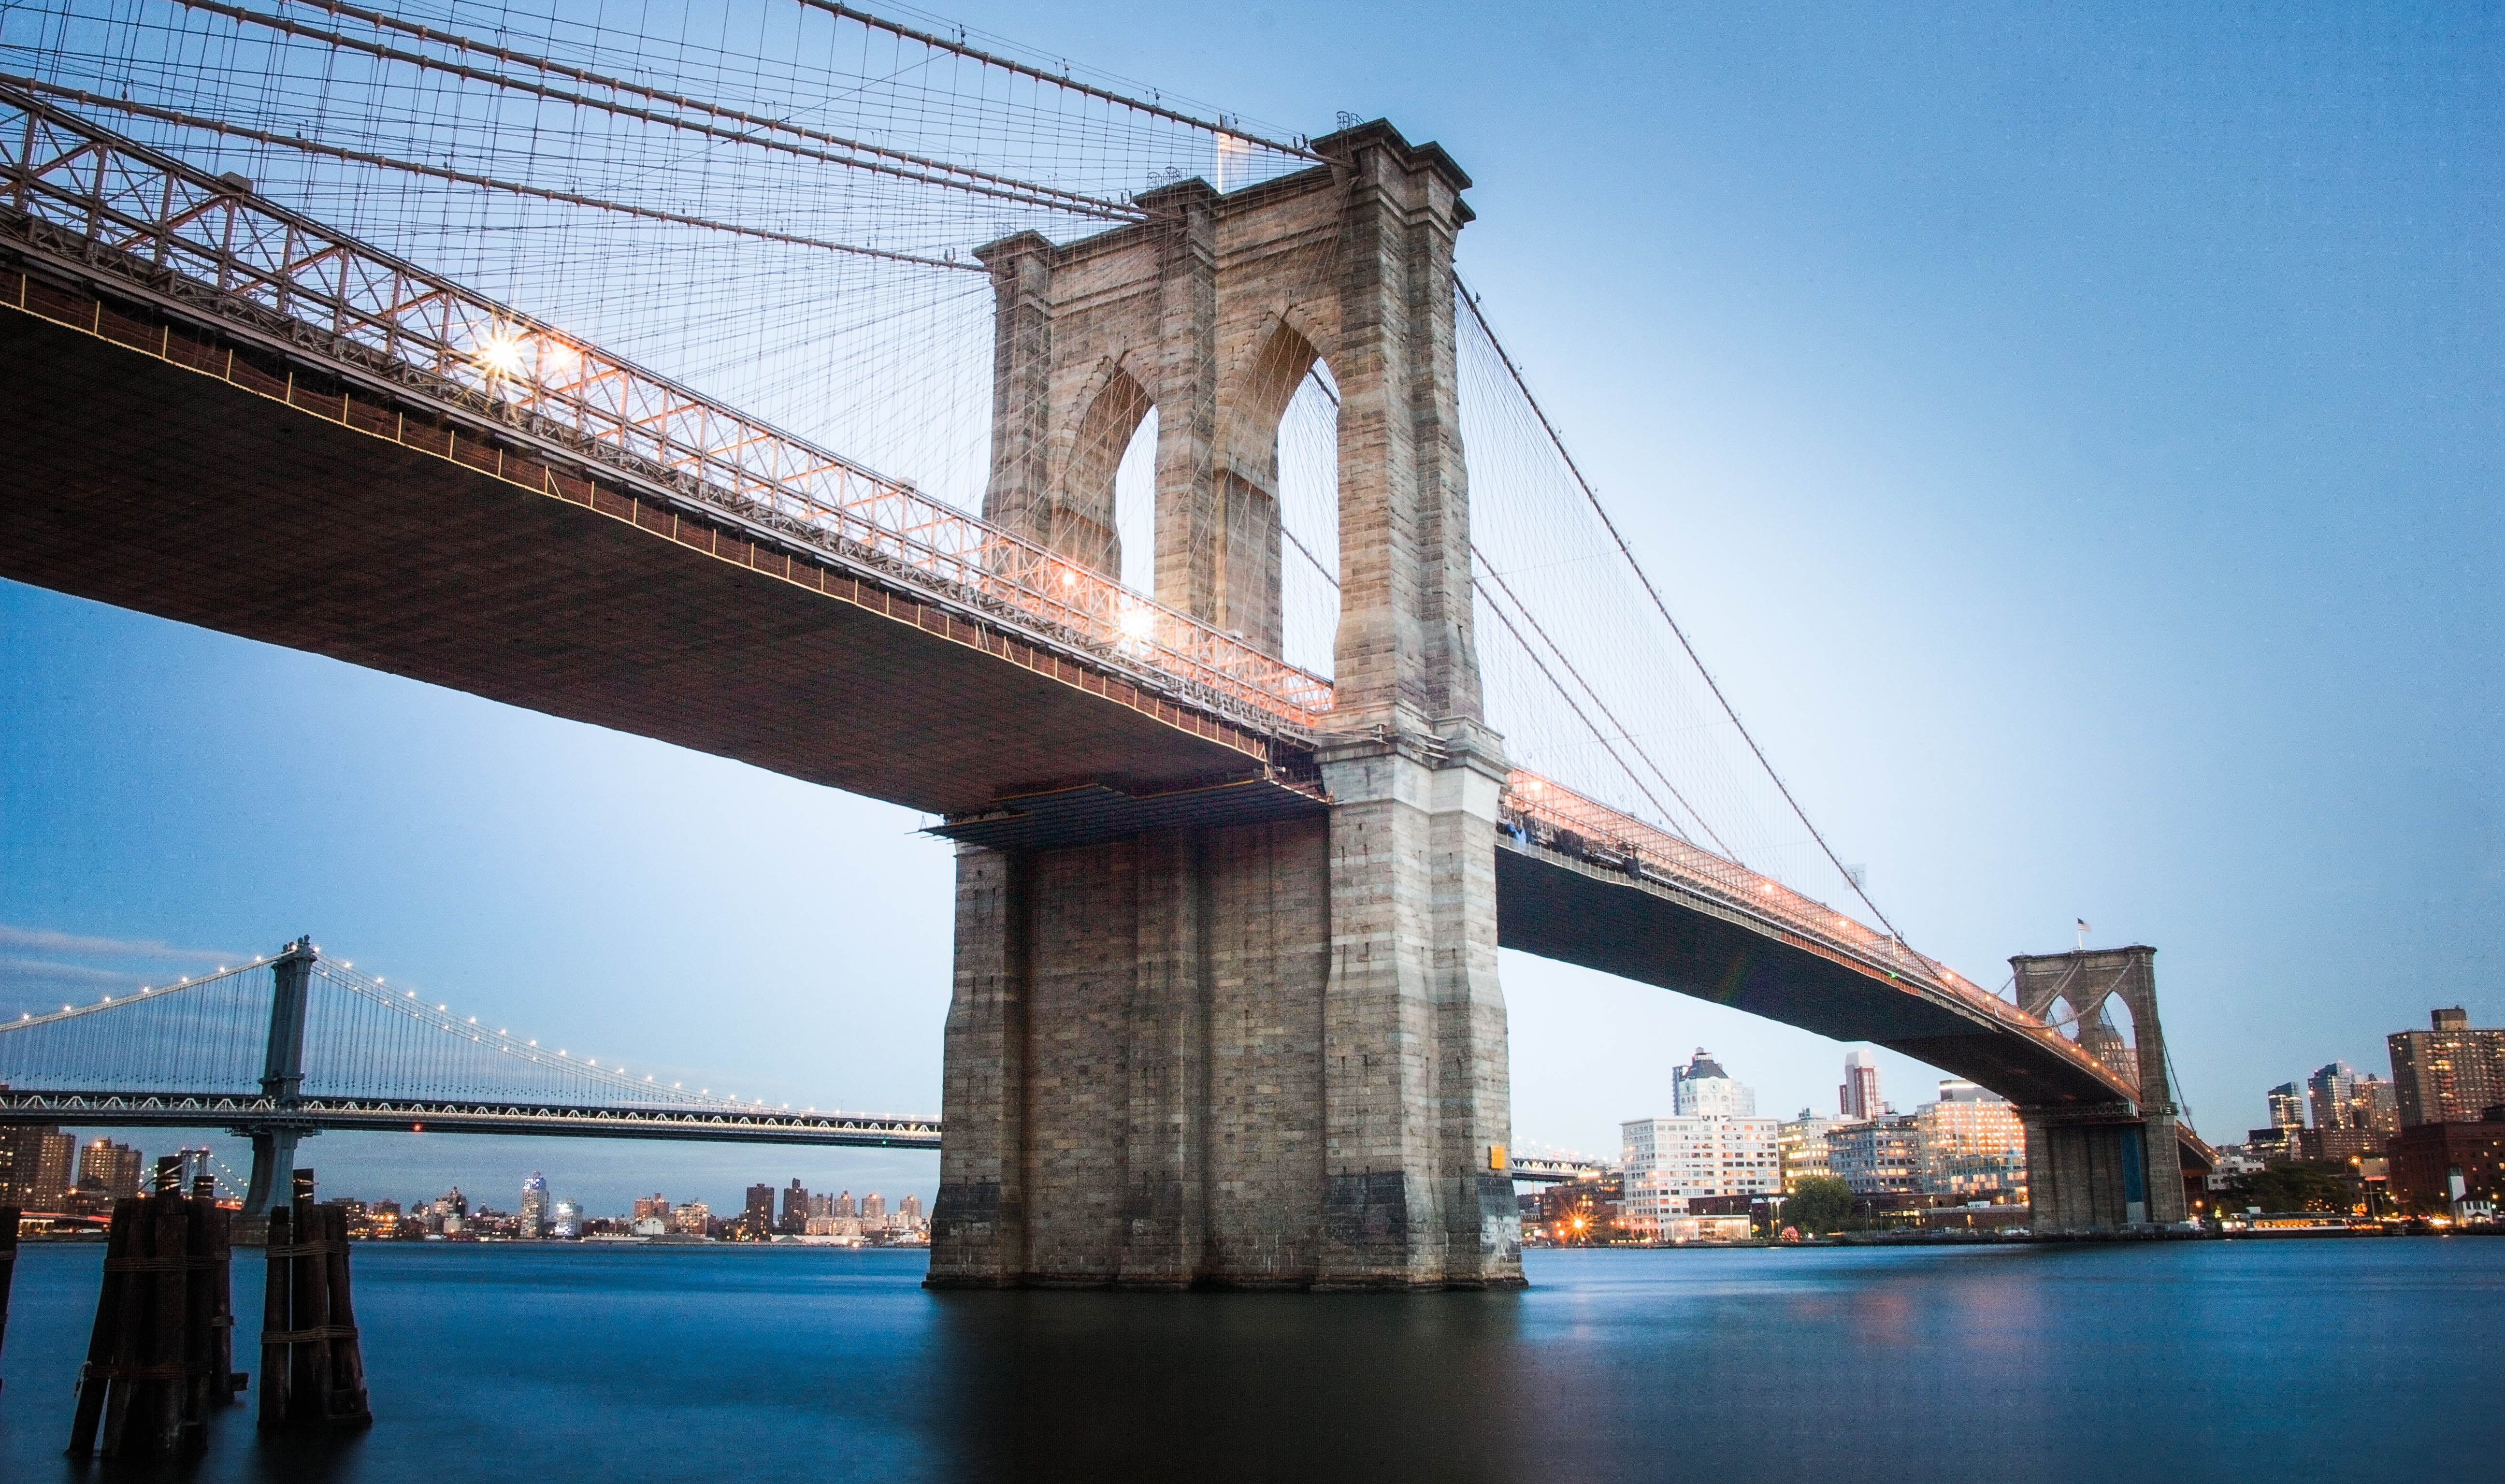 The Brooklyn Bridge with the Brooklyn skyline in the distance in New York City